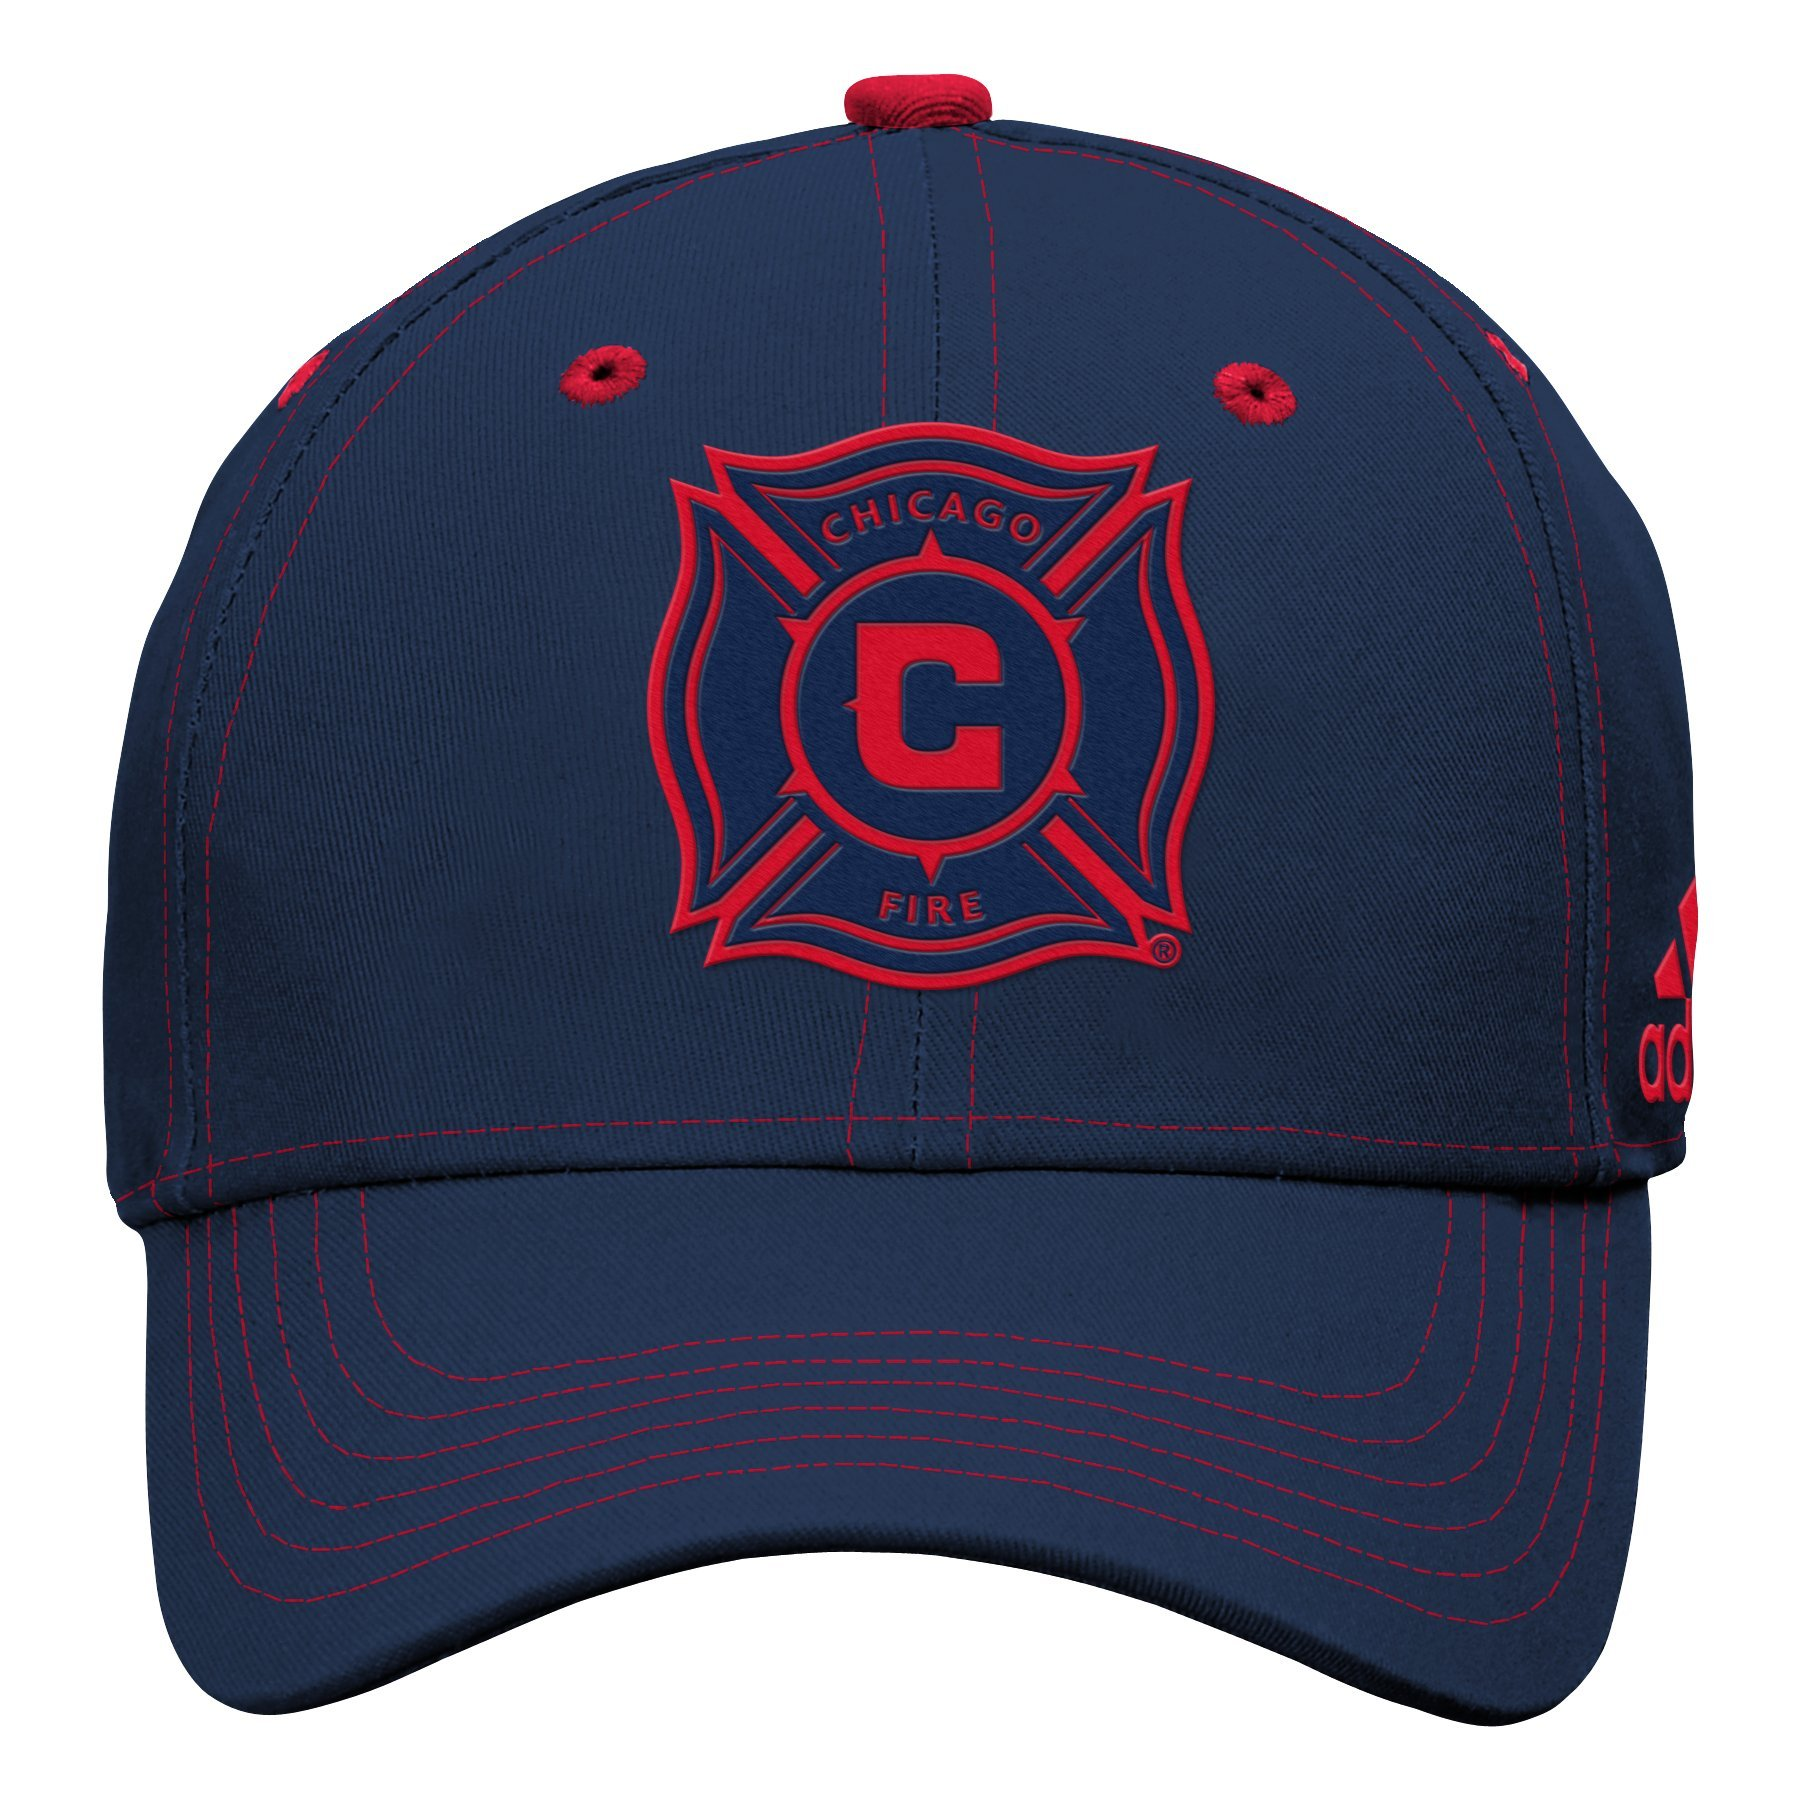 Outerstuff MLS Chicago Fire Boys Tonal Logo Structured Adjustable Hat, New Navy, One Size (8)